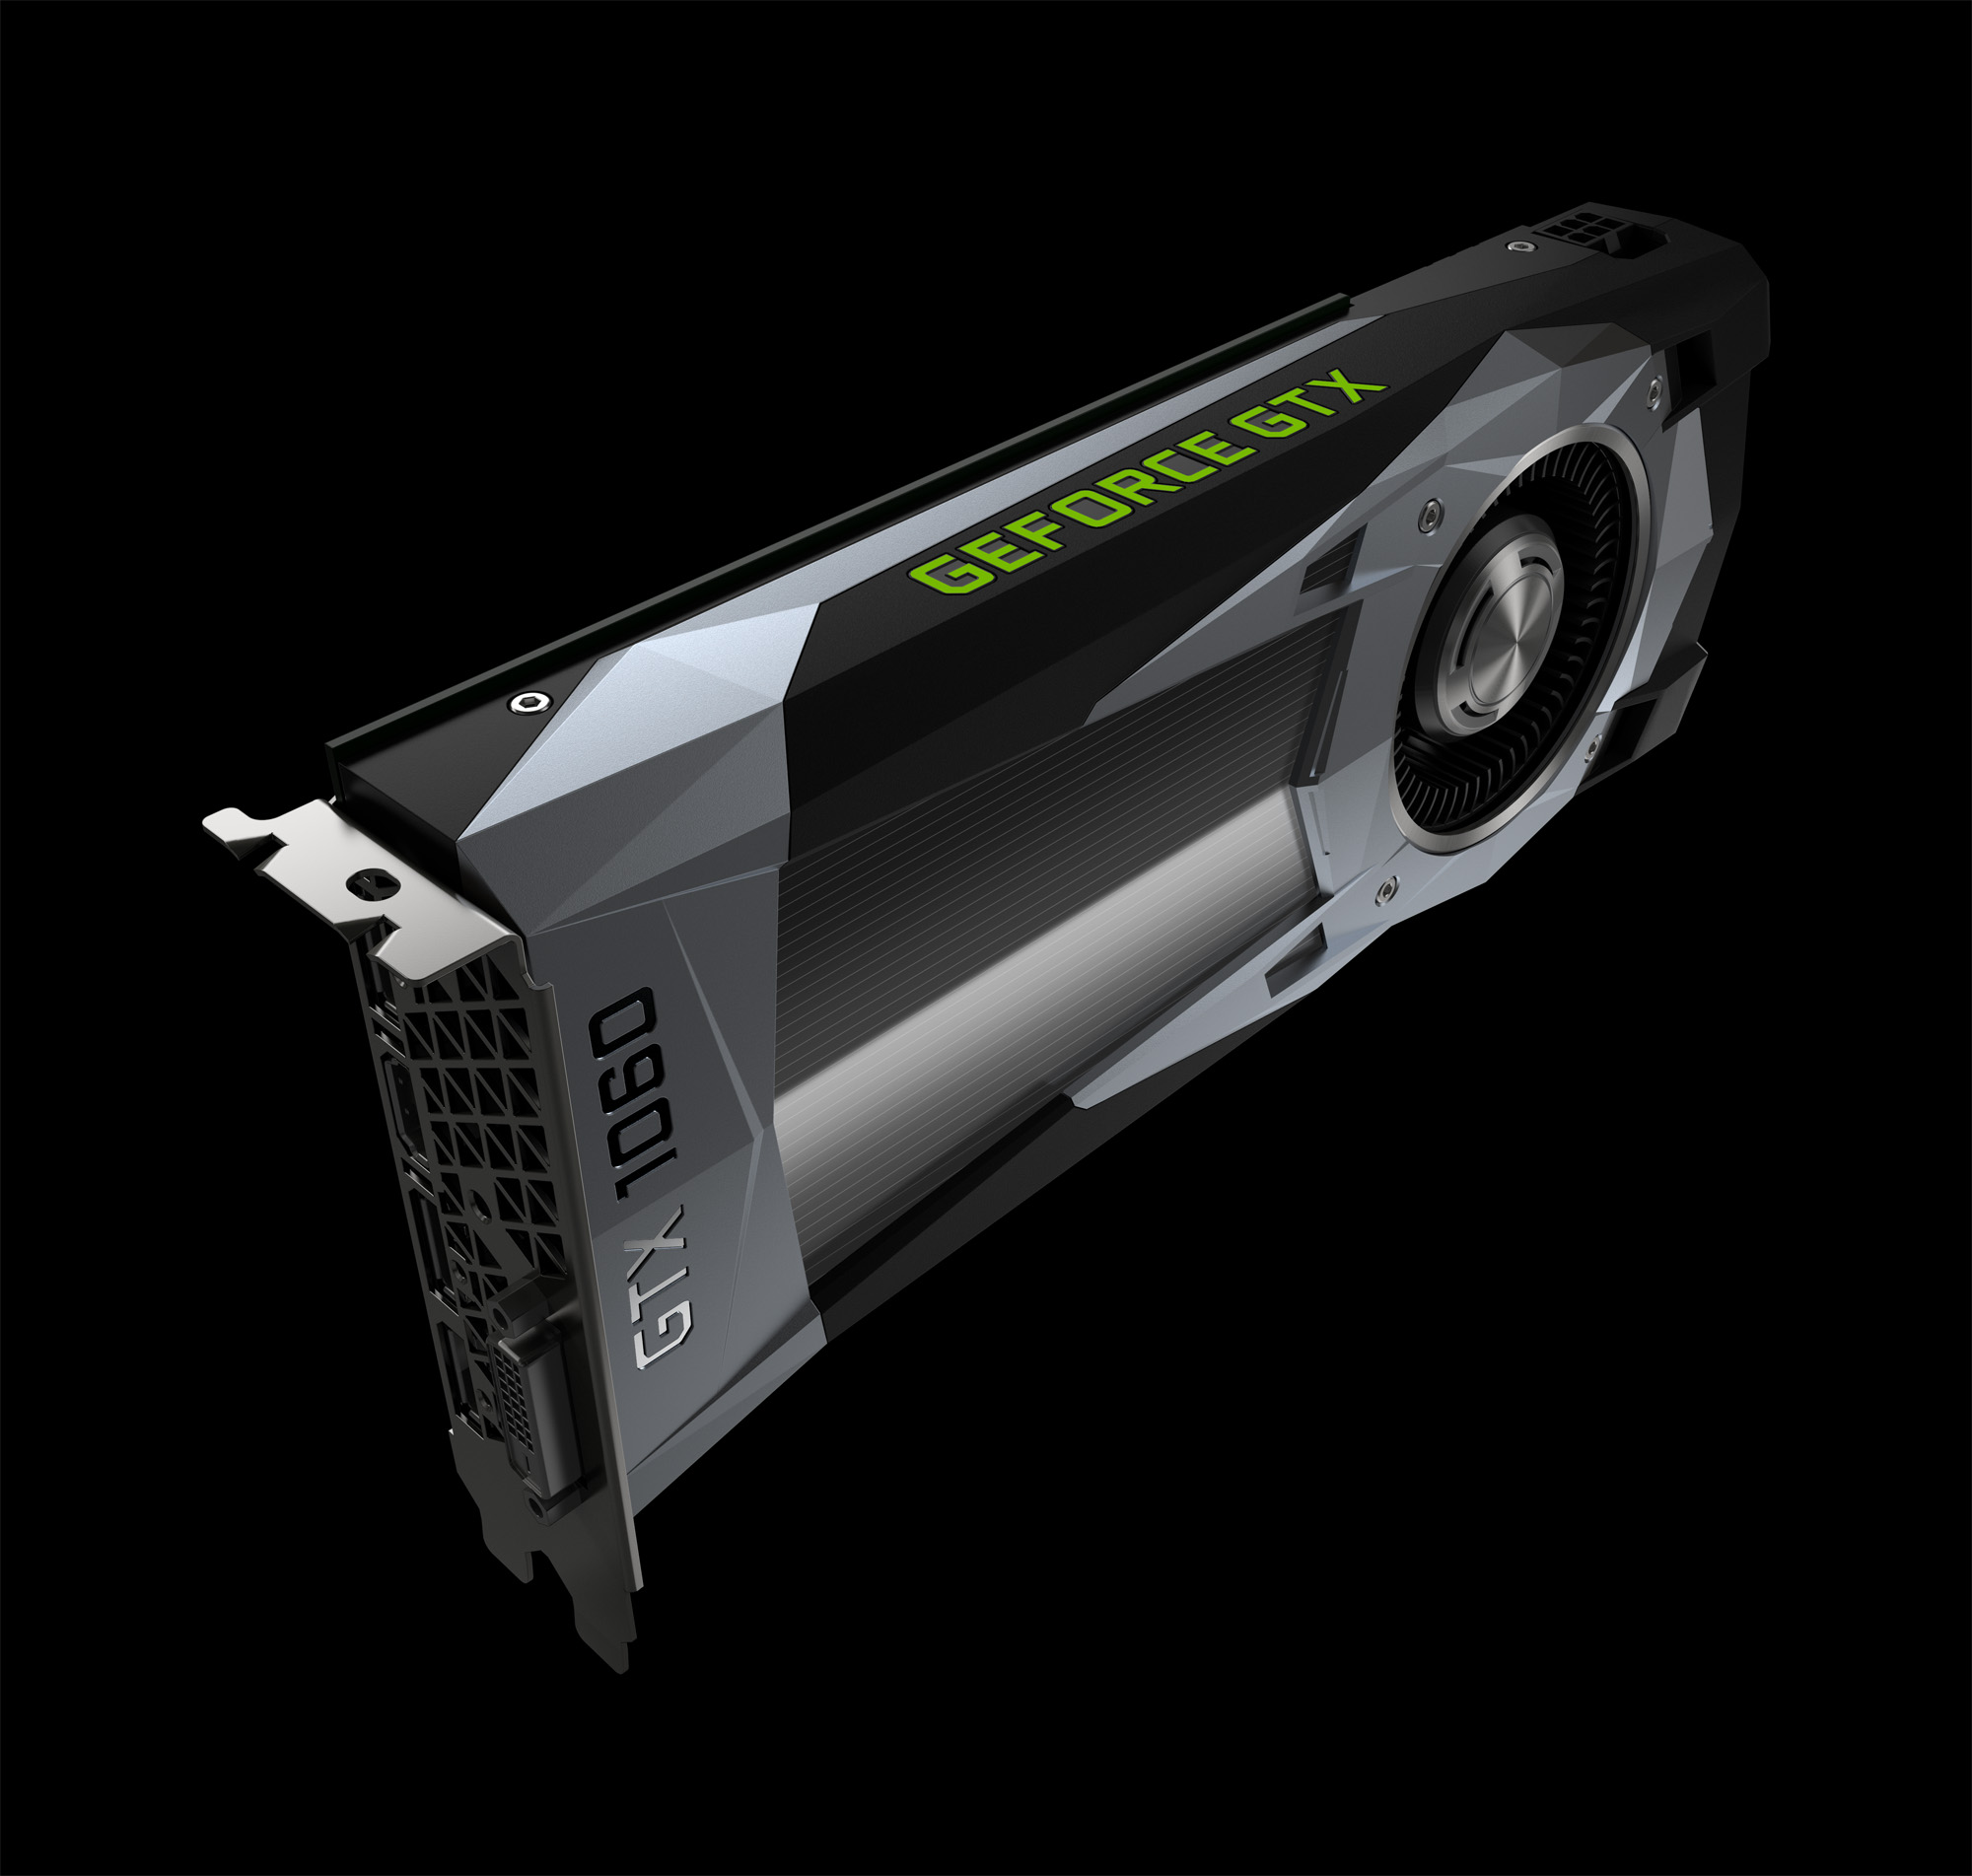 GeForce GTX 1060: Not bad for a low-end card